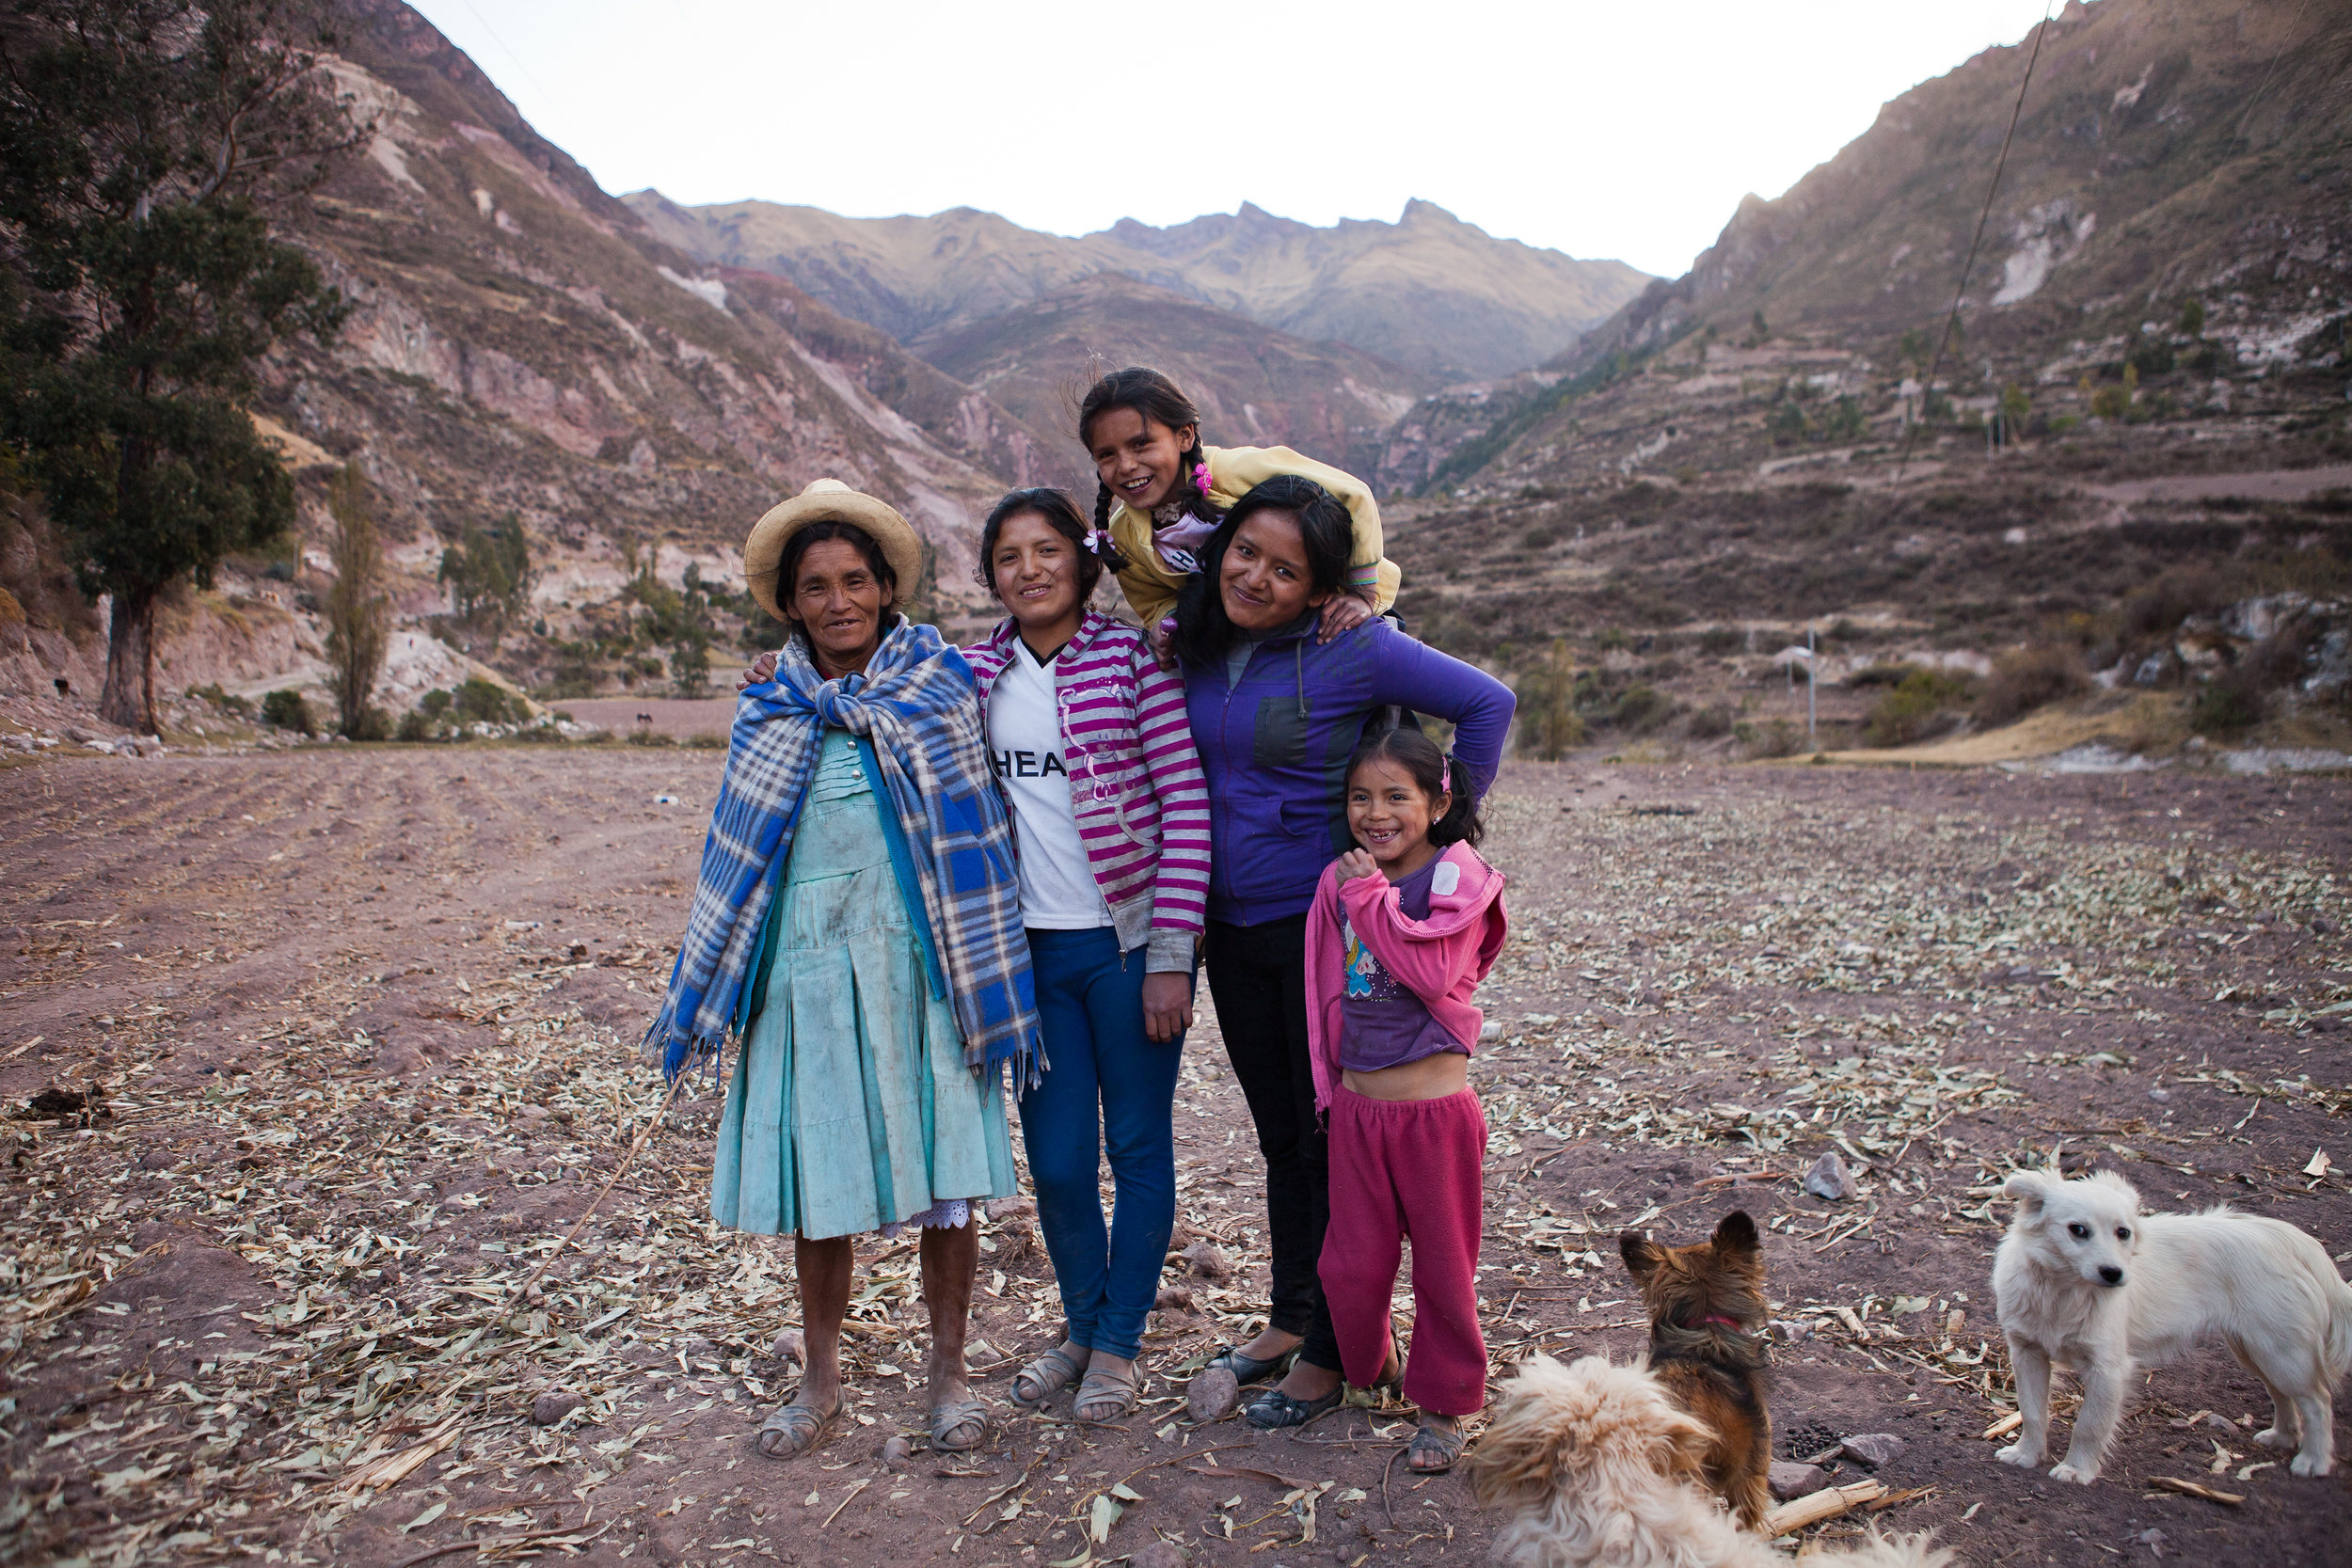 She's the First Scholar Nohemi (second from left) poses with her mother and sisters near their home in Peru.